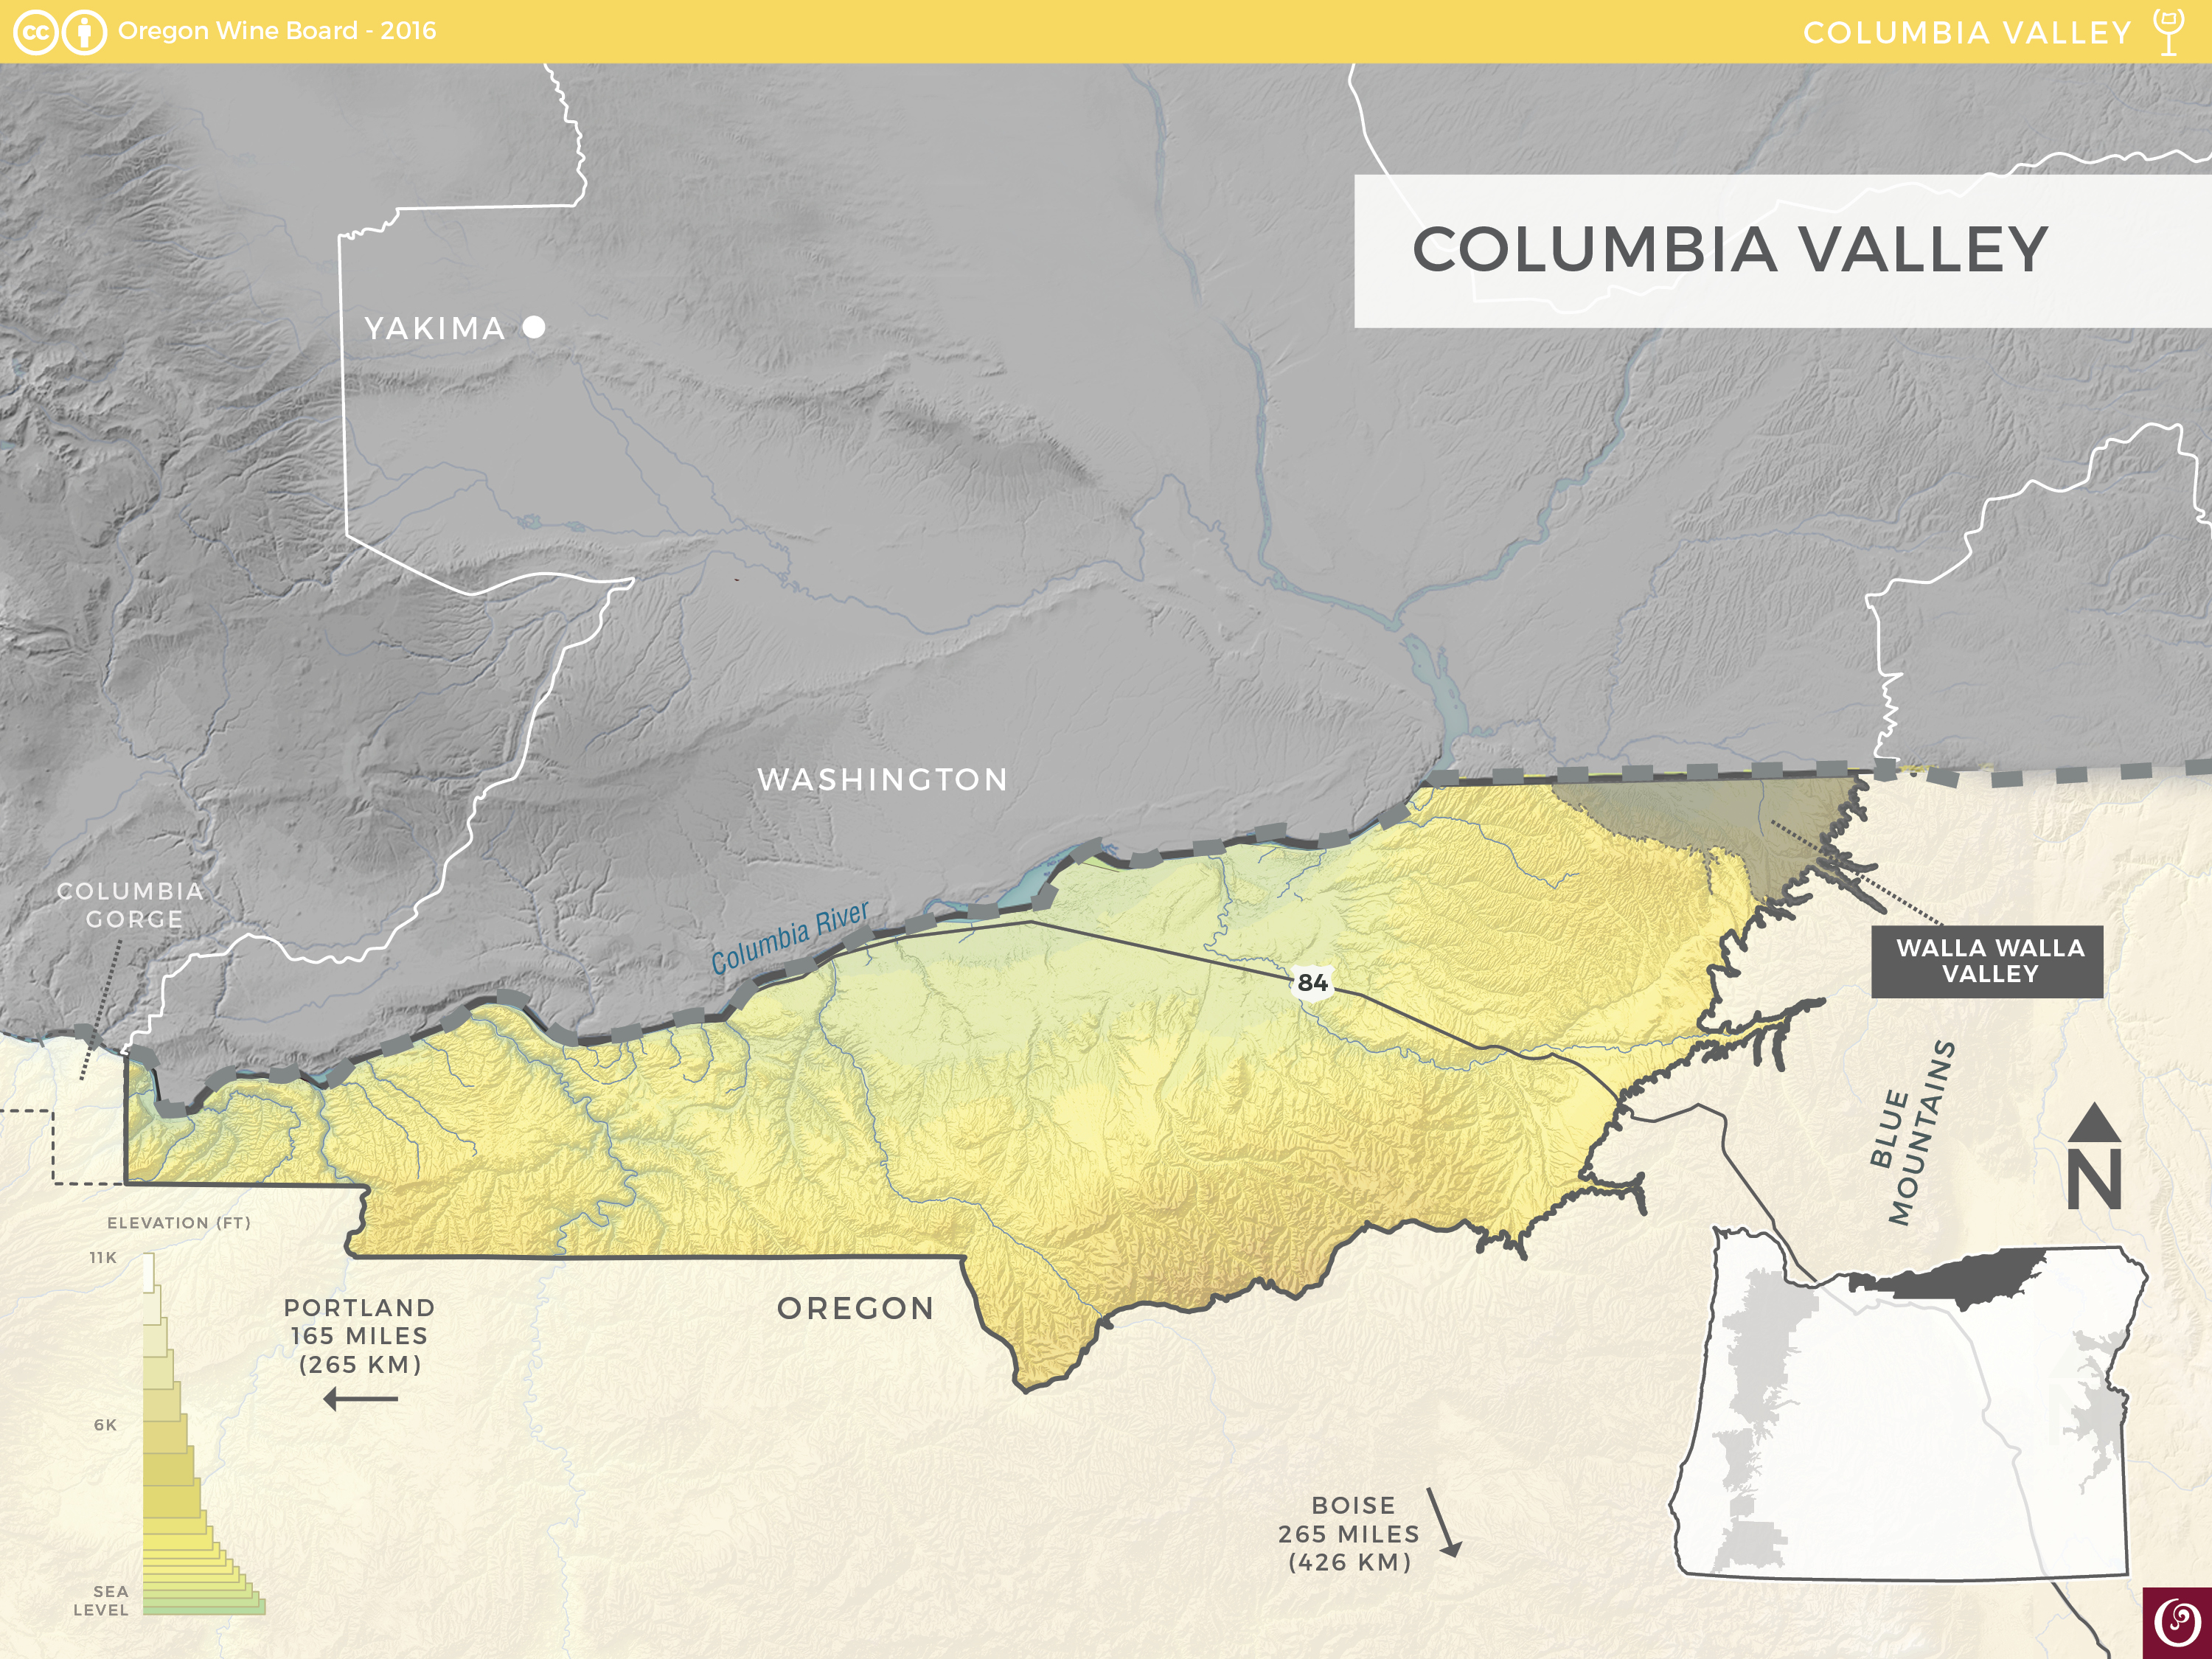 oregon wine map columbia valley avaowbtrade2016 10 12T2311330000 oregon wine map columbia valley ava Oregon Wine Resource Studio